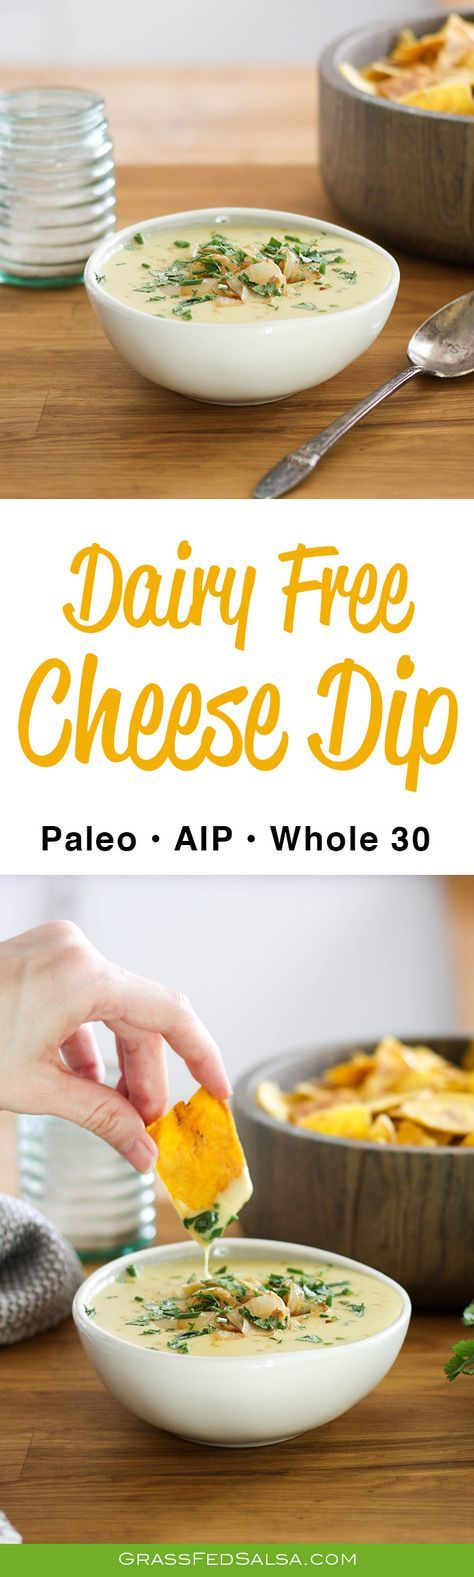 This Dairy Free Cheese Dip is the perfect party food whether you're following Whole 30, AIP, or Paleo. Personally, I love topping this Cheese Dip with sautéed onions, cilantro, chives, and bacon, and using tostones to dip.